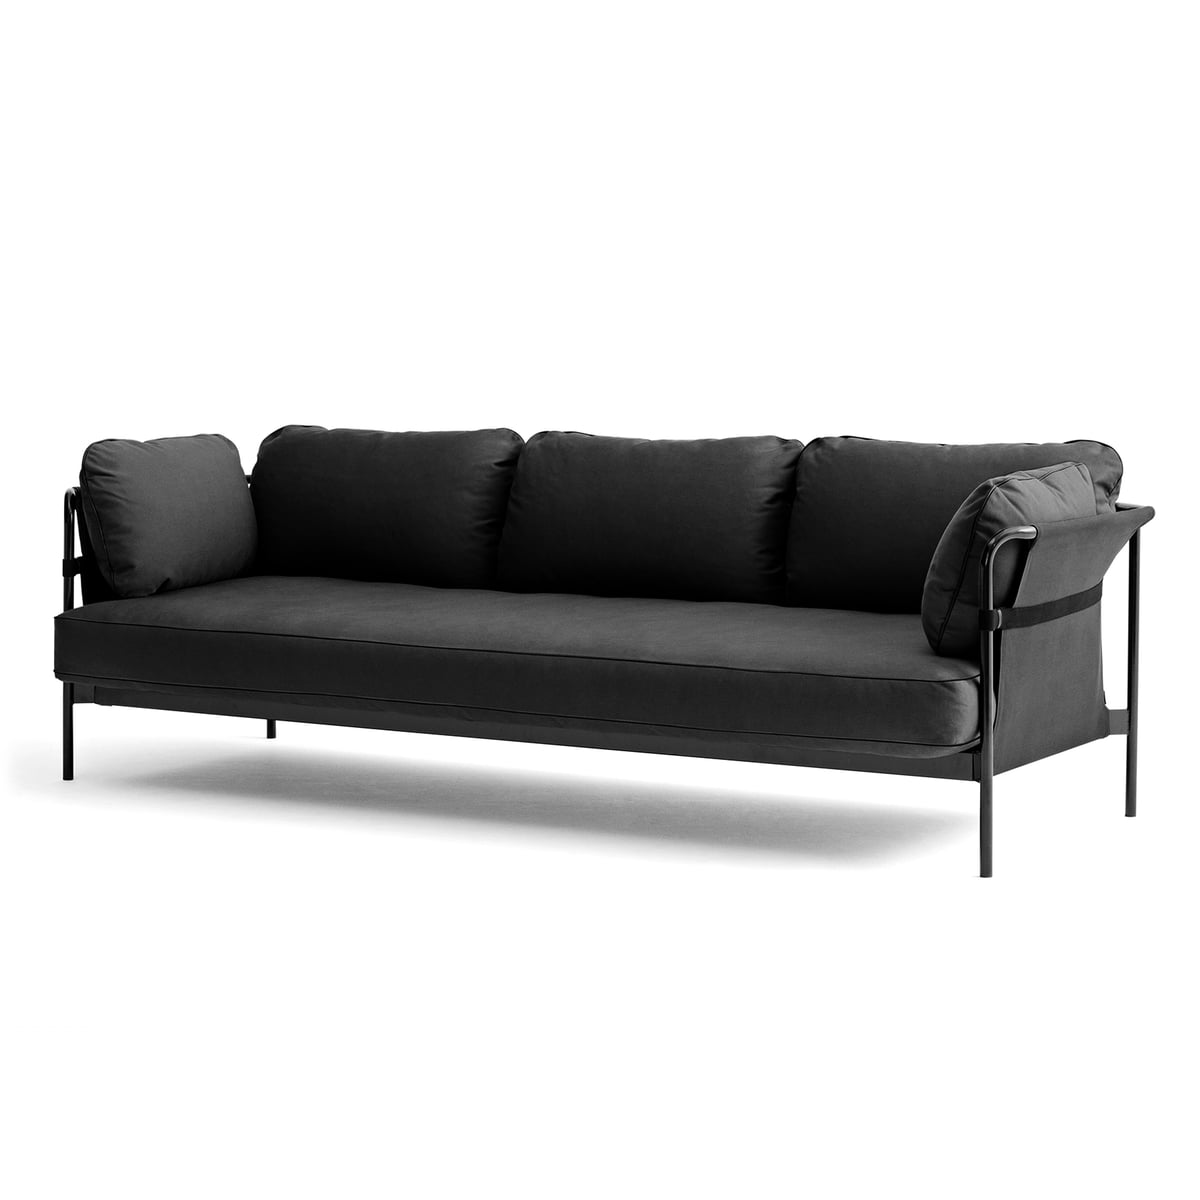 hay can sofa von bouroullec im design shop. Black Bedroom Furniture Sets. Home Design Ideas